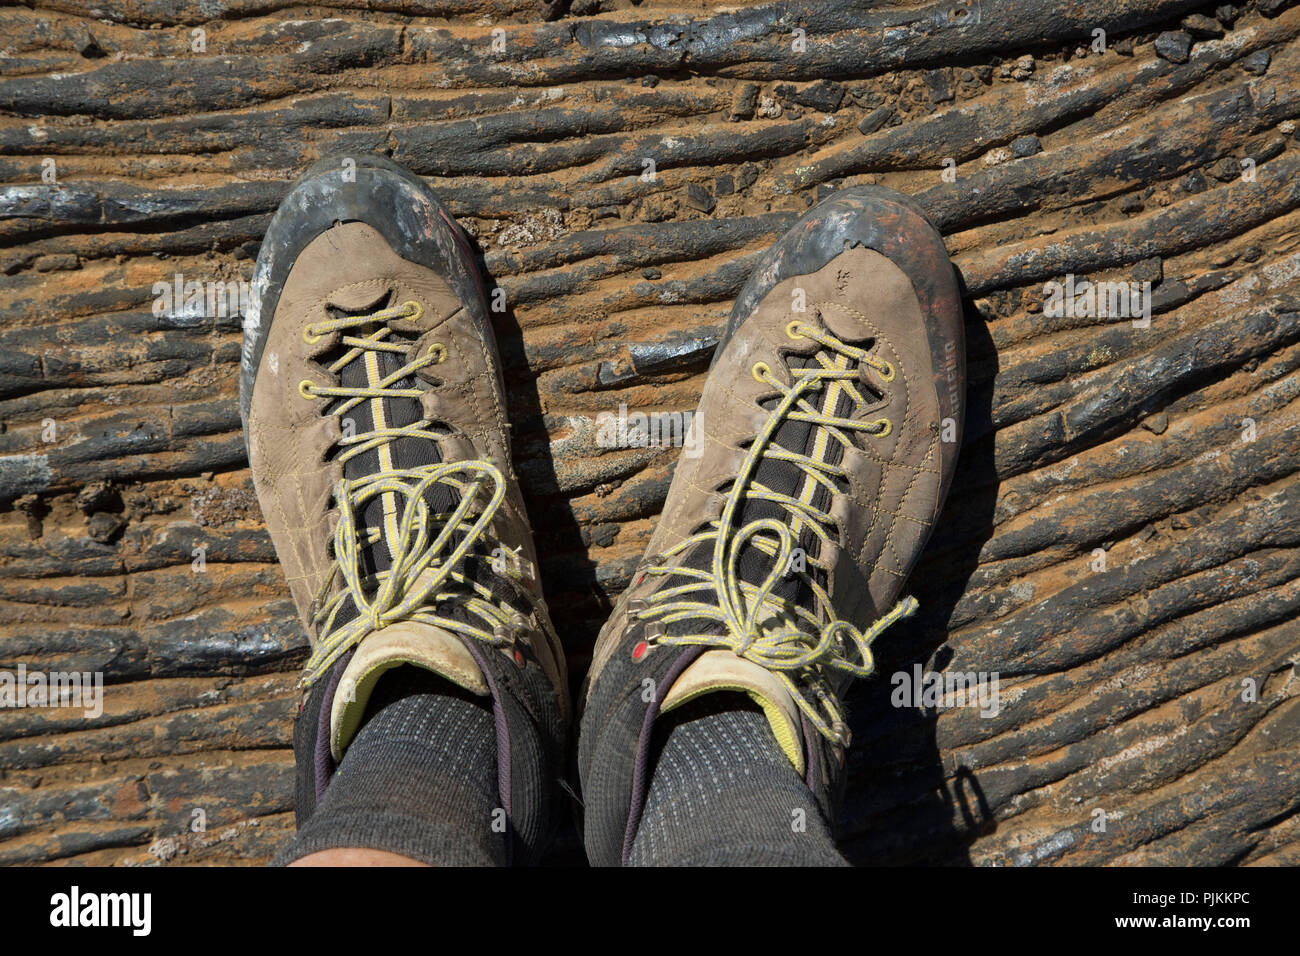 Iceland, hiking boots on cooled lava - Stock Image